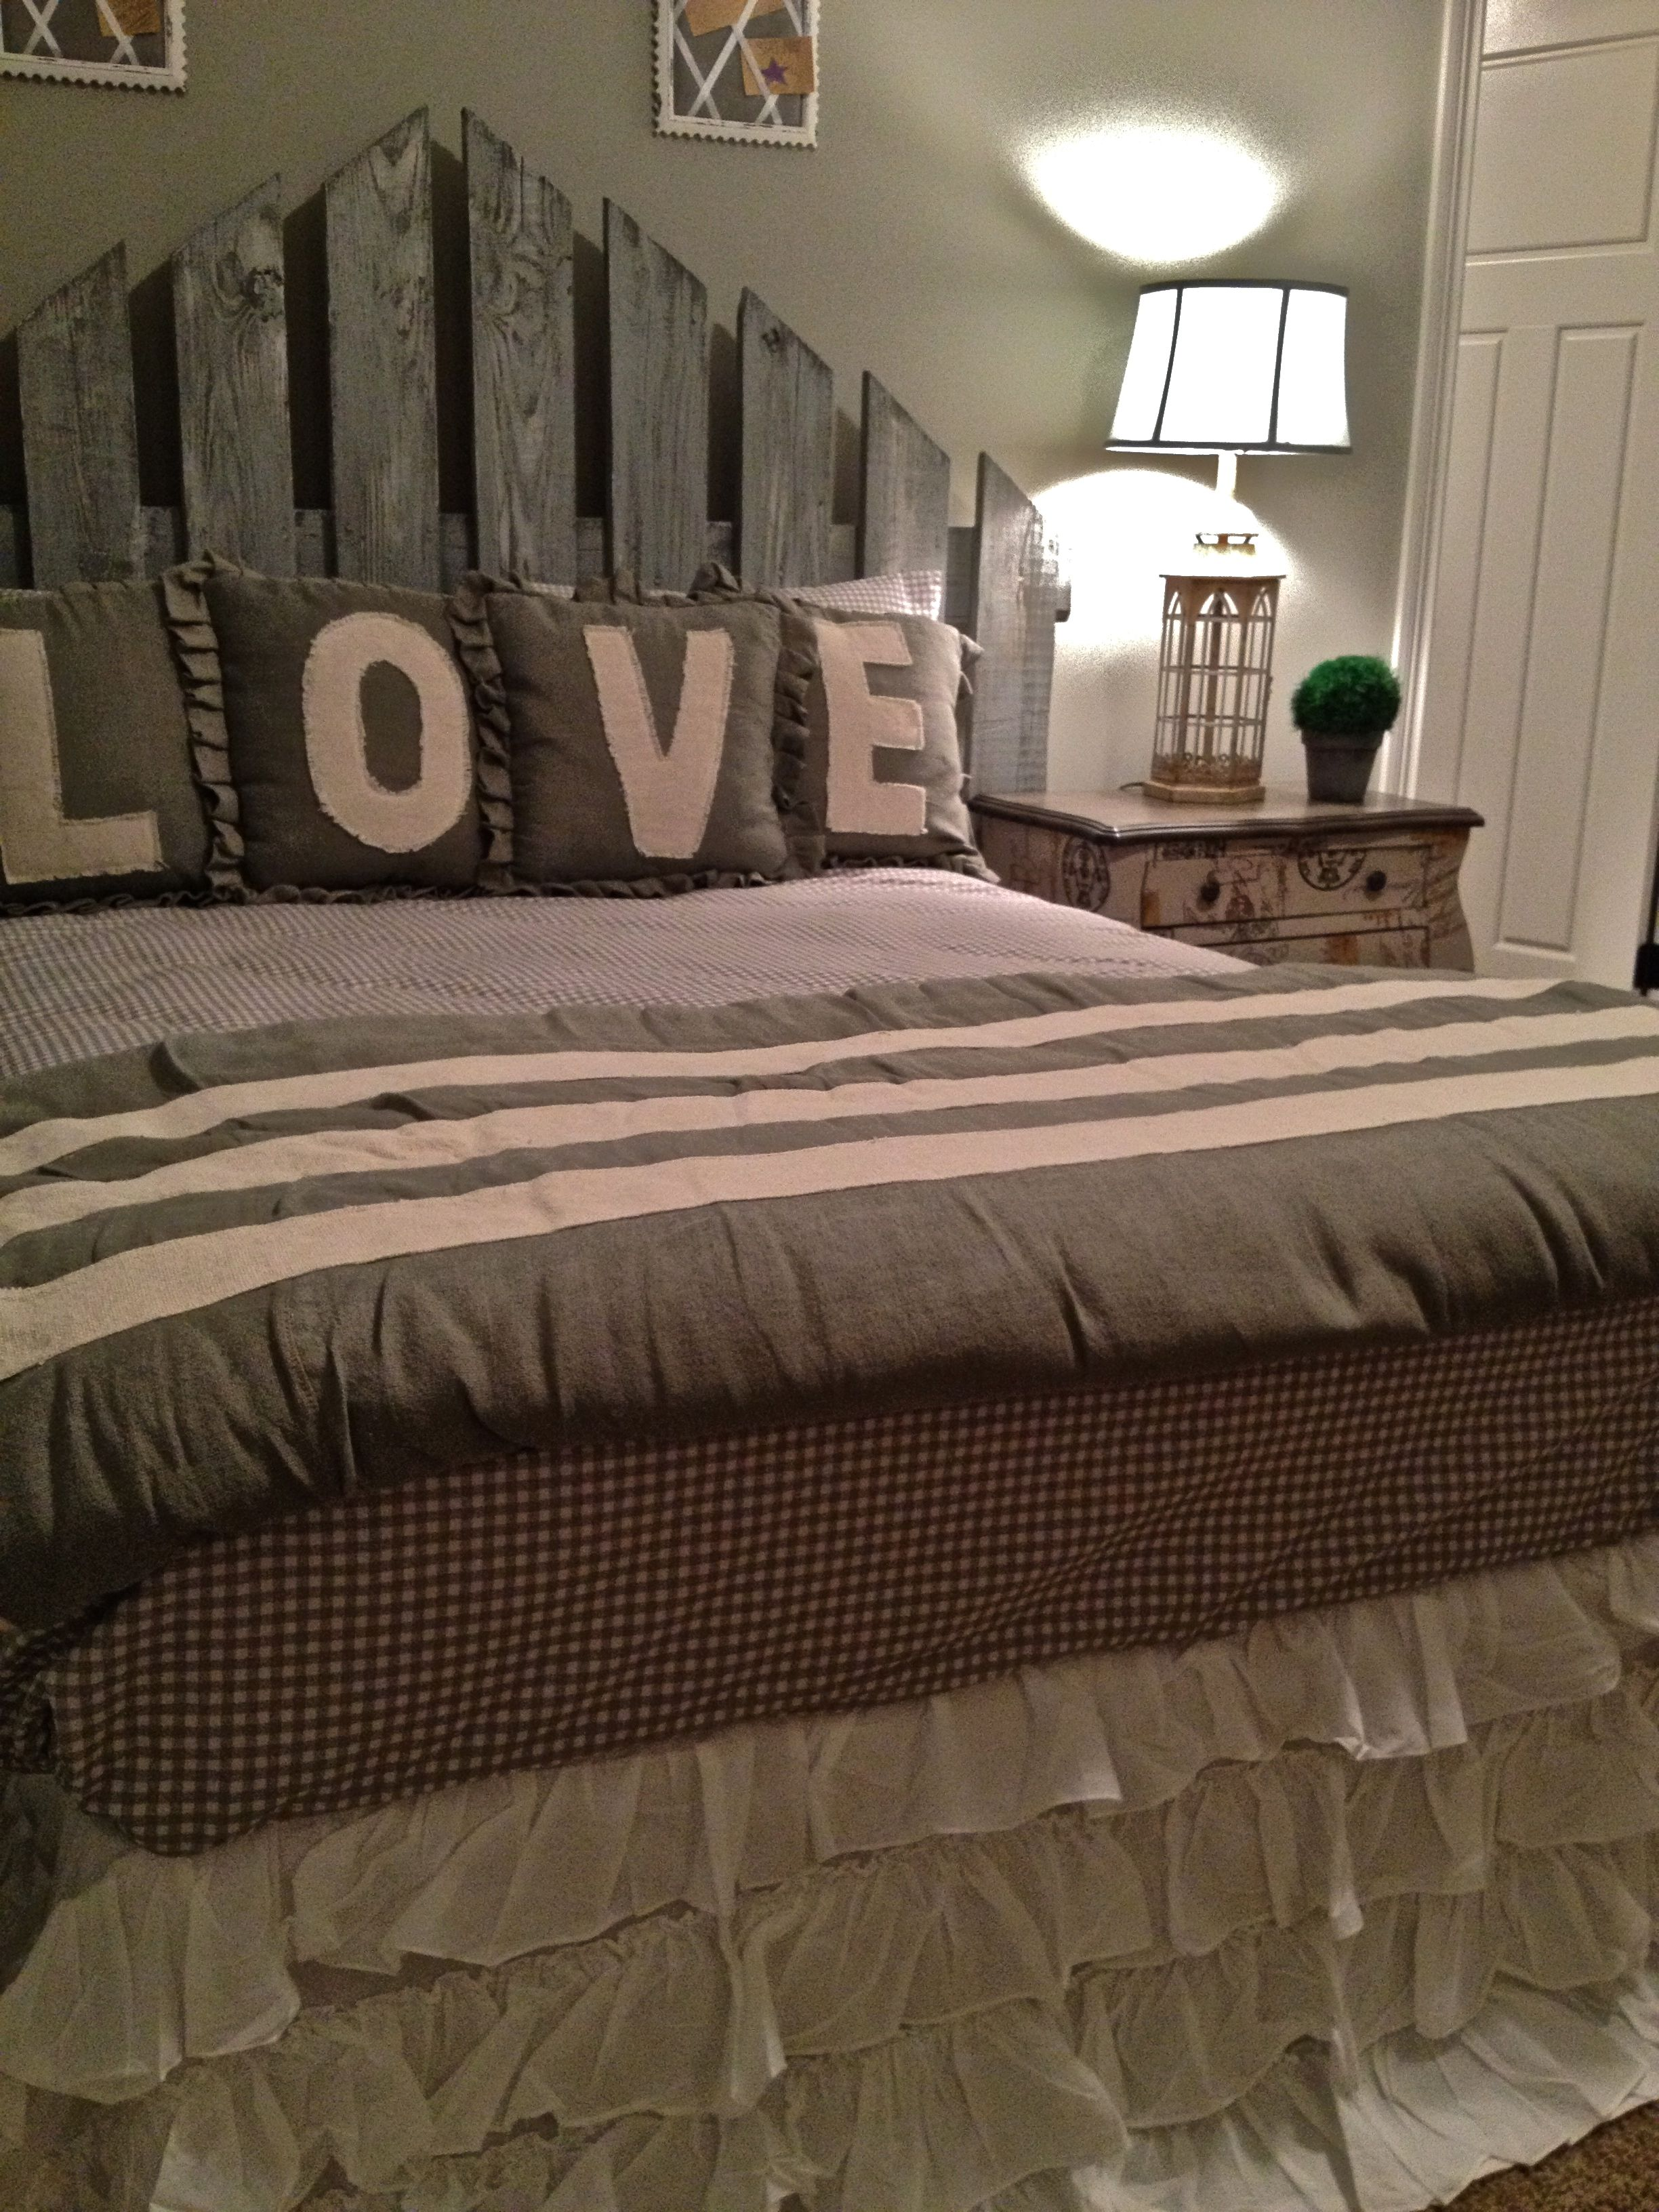 The pillows would be easy to do and spell out home instead